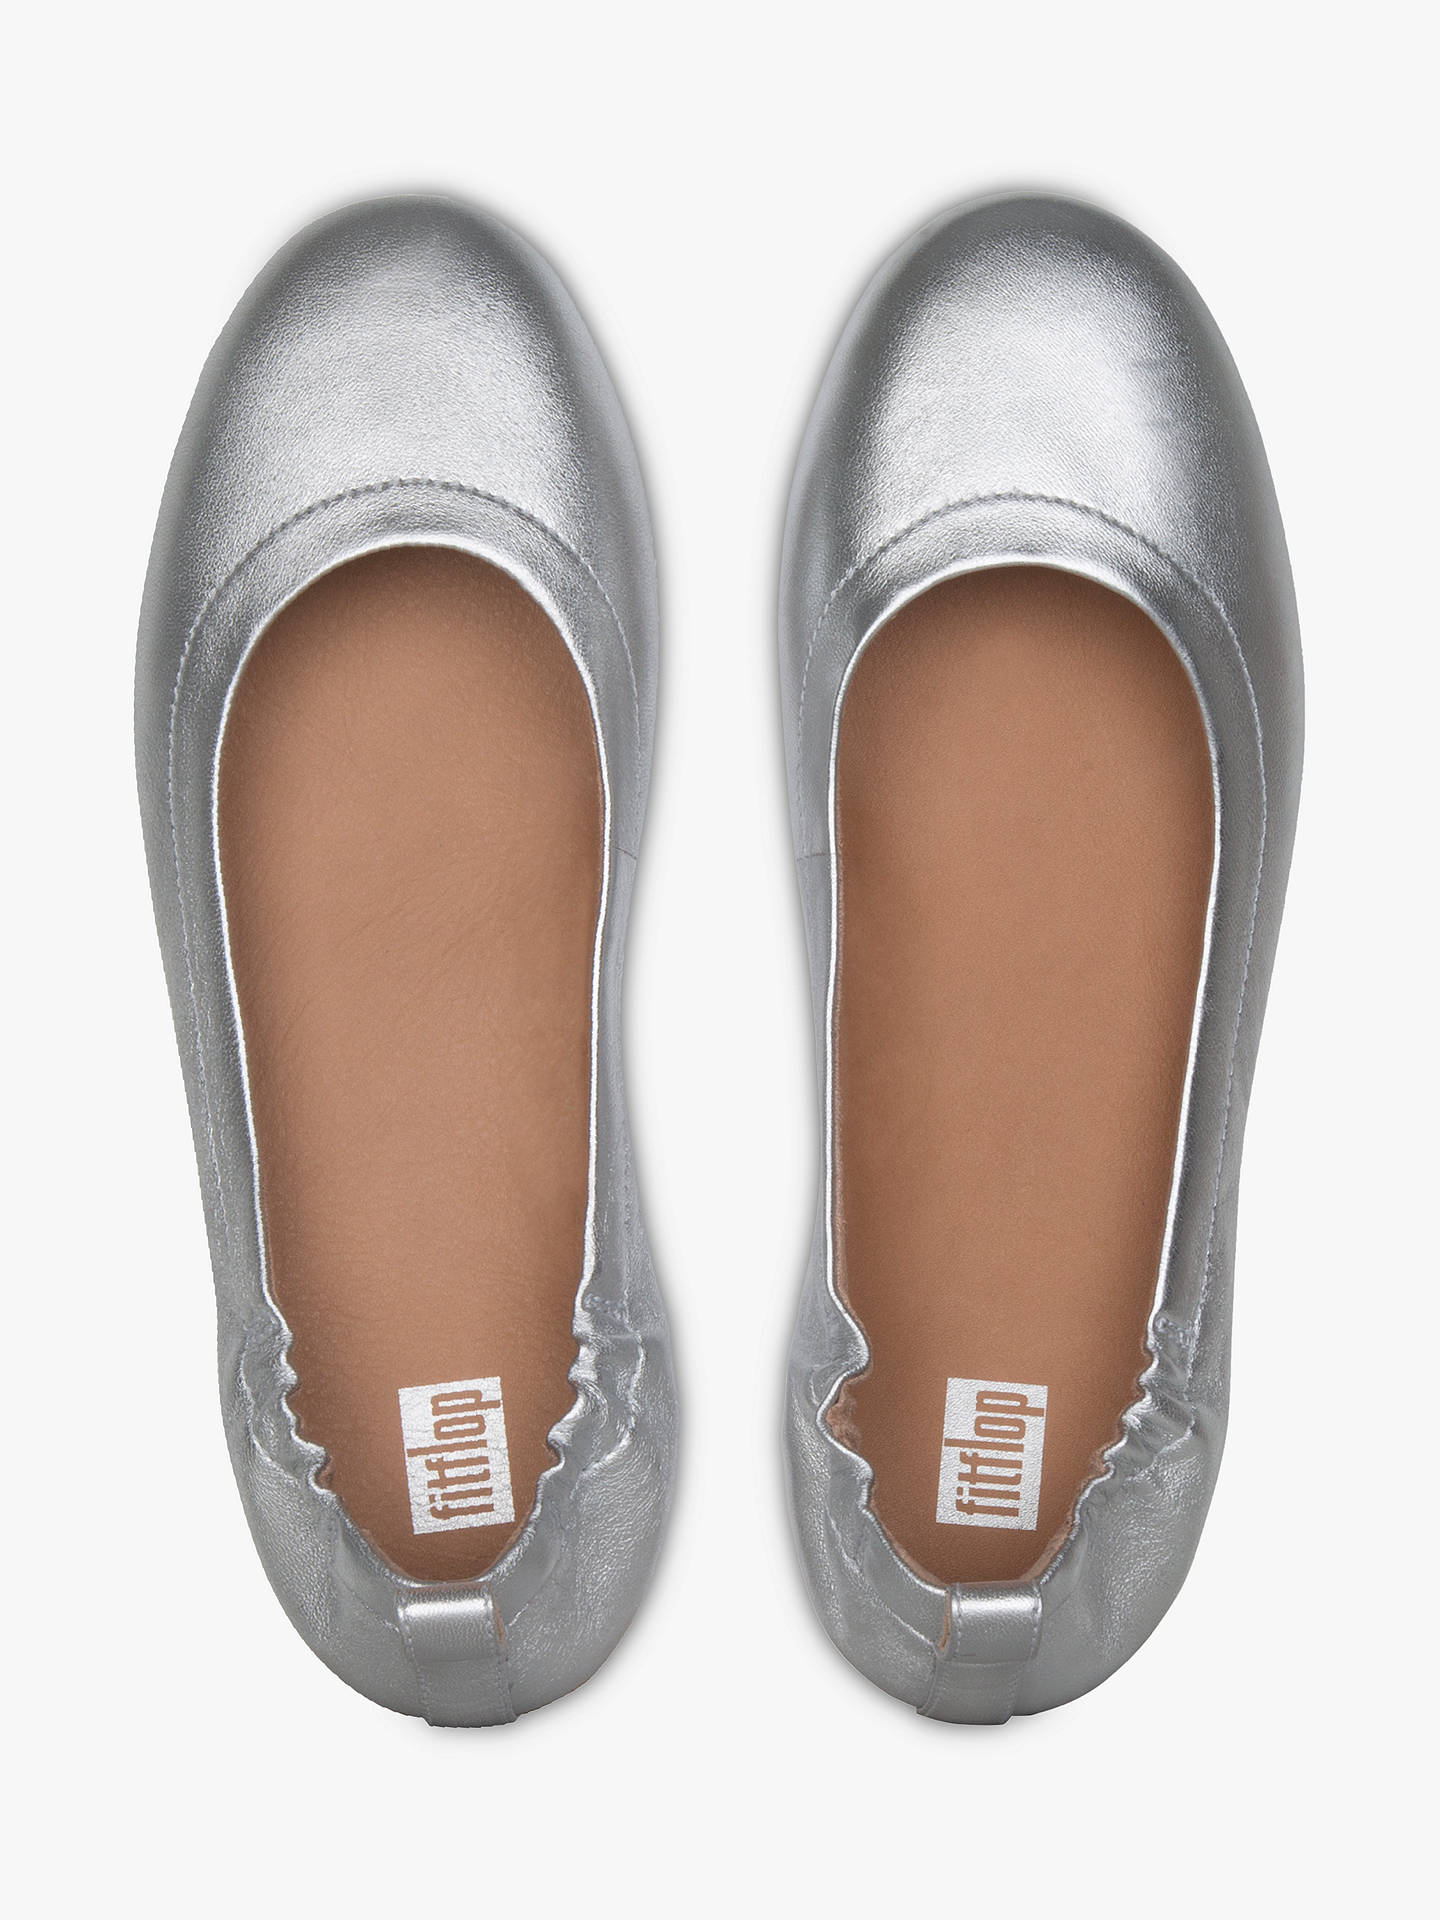 Buy Fitflop Allegro Flat Pumps, Silver Leather, 3 Online at johnlewis.com